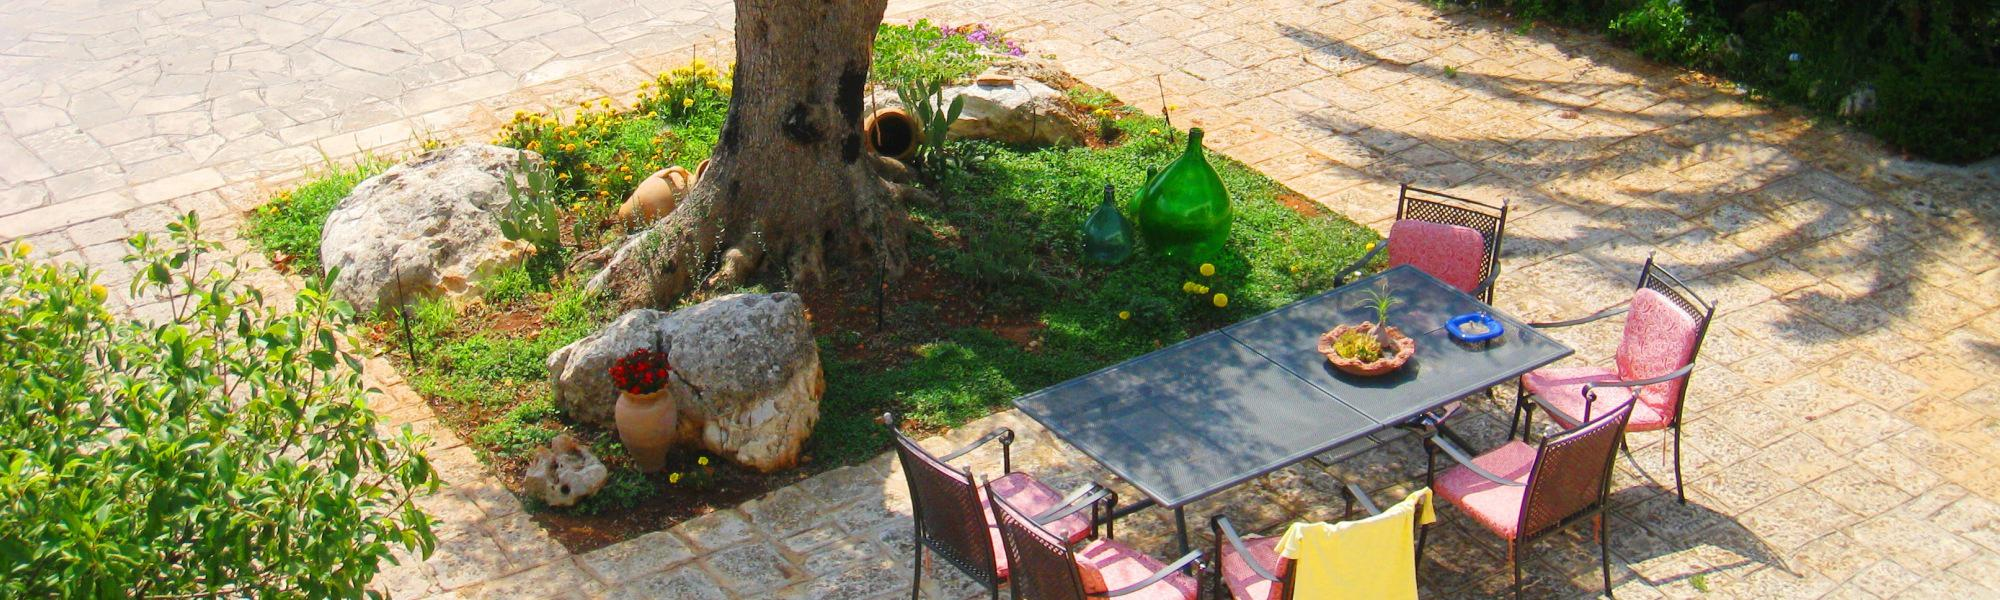 Country house Apulia  - Country house in Ostuni  Italy - Agriturismo Salinola 11